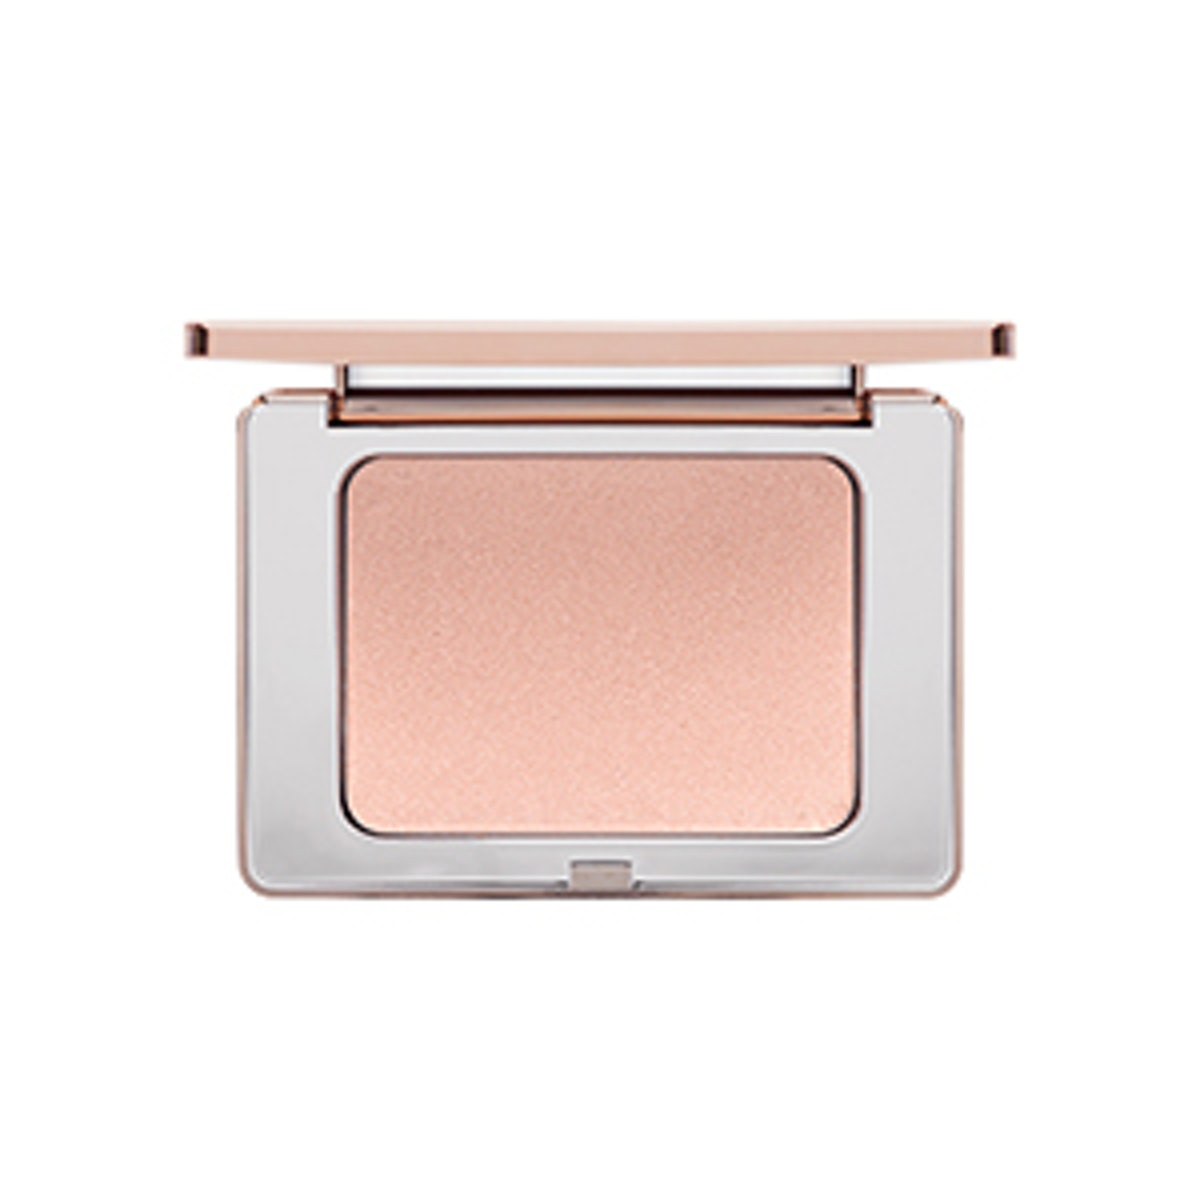 All Over Glow Face & Body Shimmer Powder